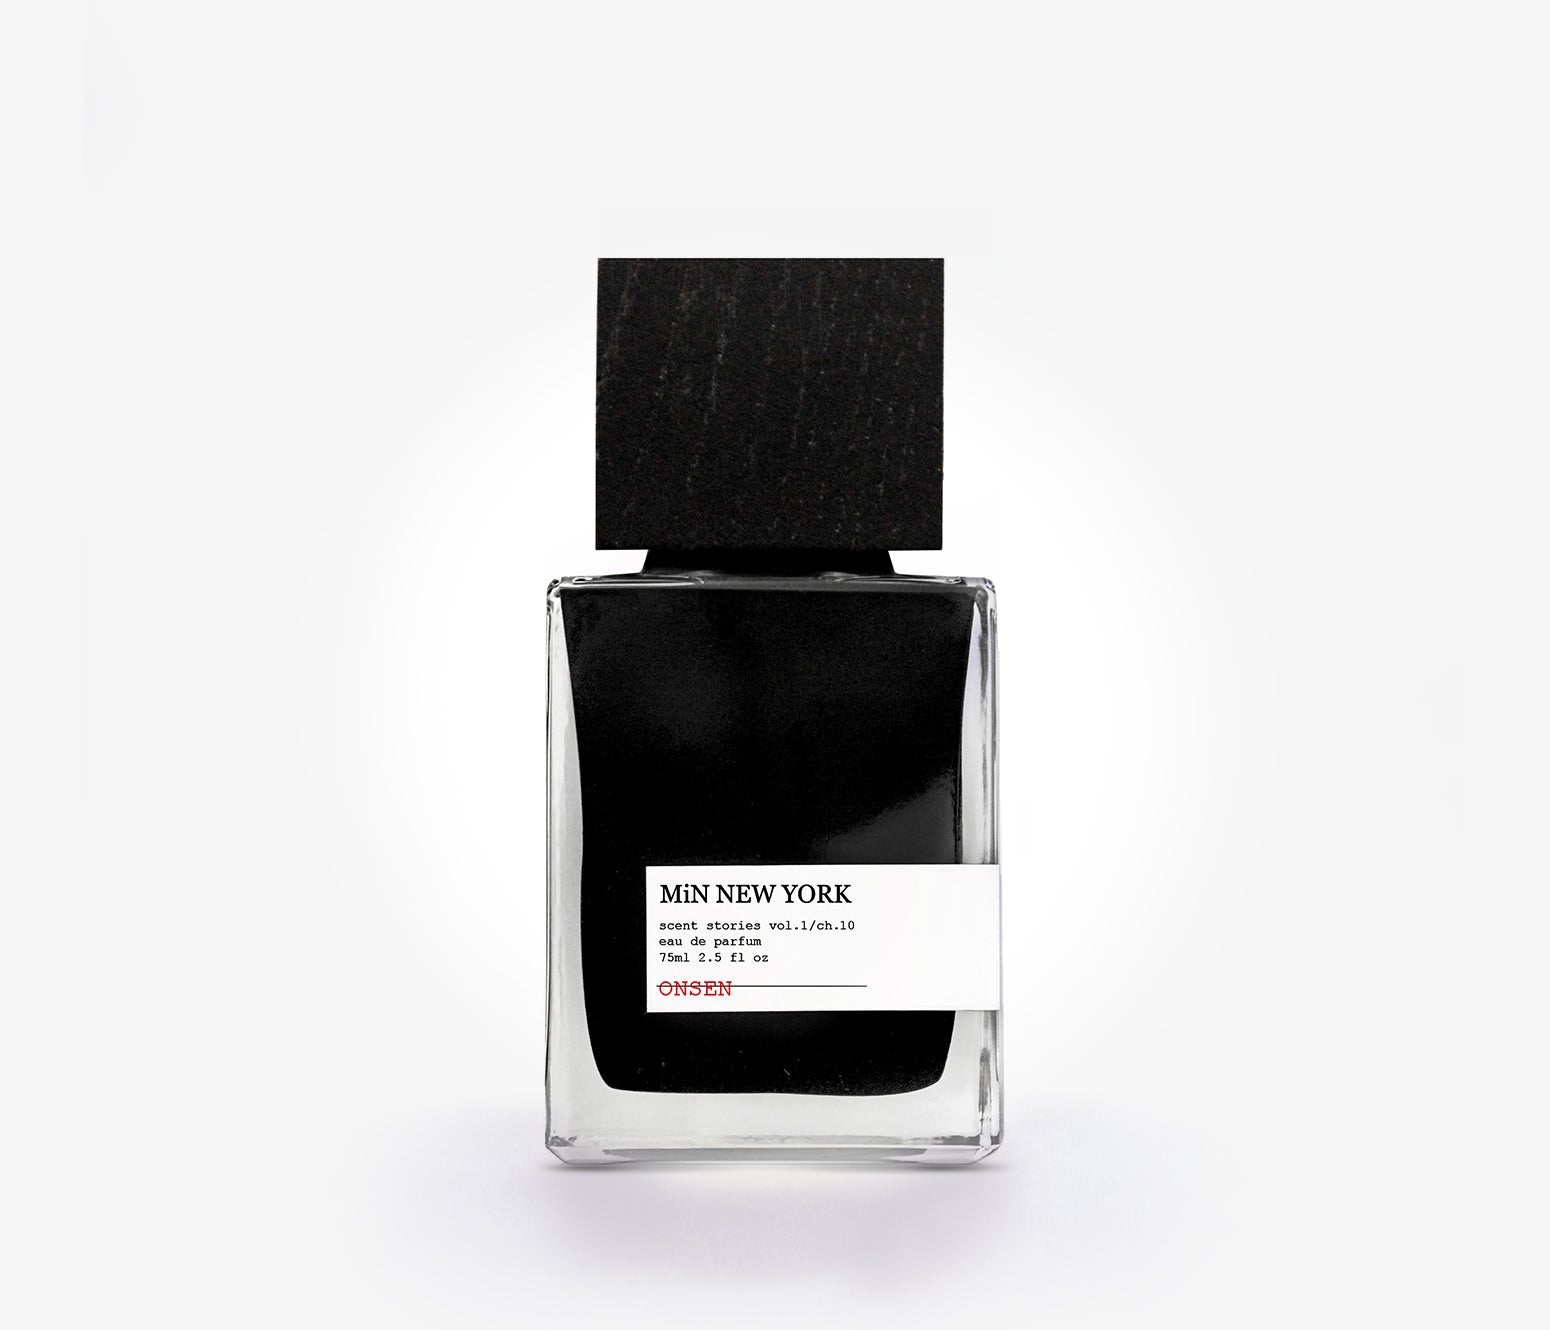 MiN New York - Onsen - 75ml - IFX001 - product image - Fragrance - Les Senteurs